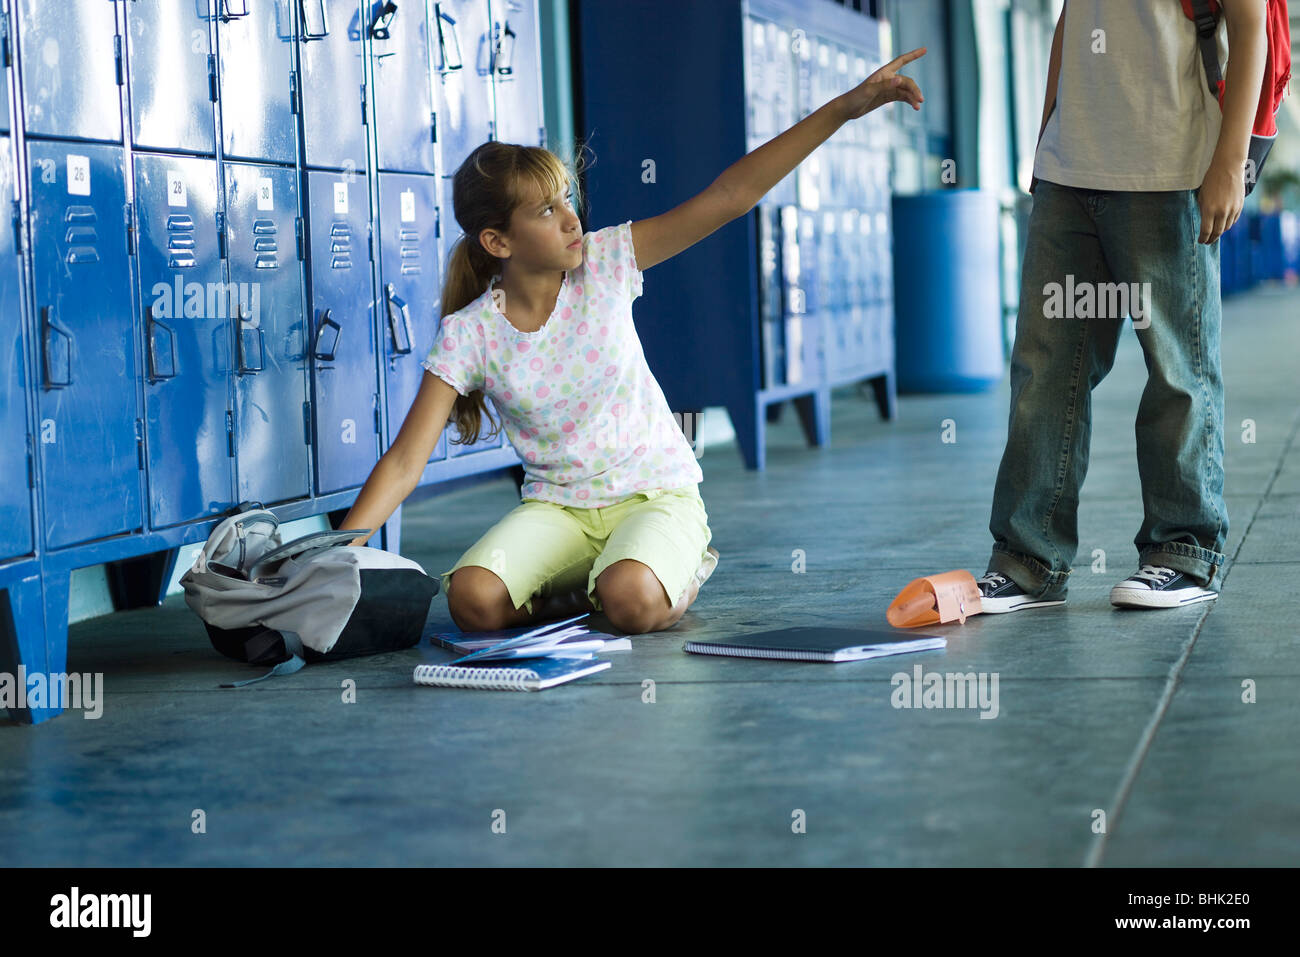 Female junior high student sitting on floor pointing angrily up at boy standing over her - Stock Image